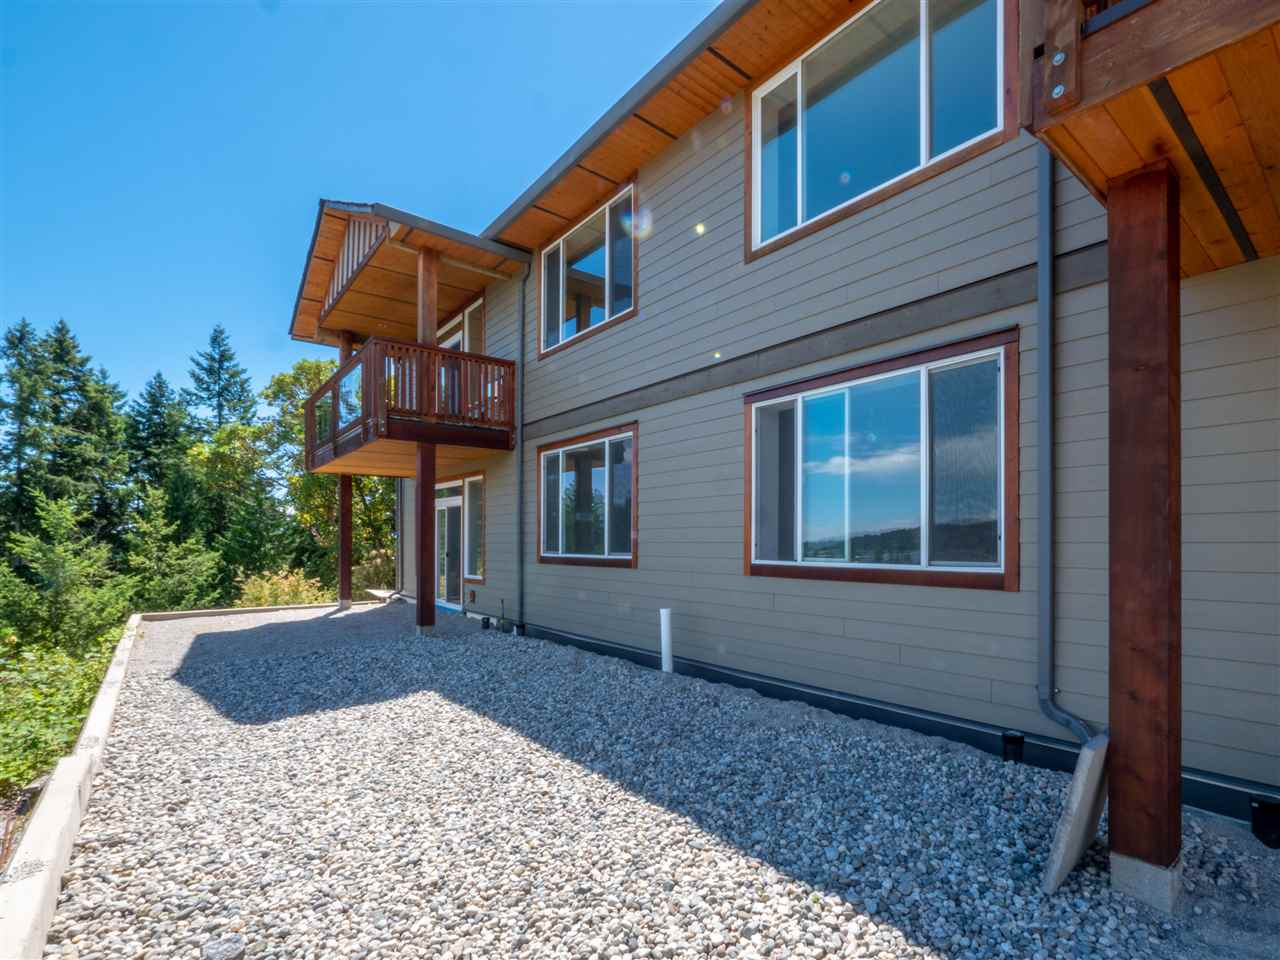 101 5885 COWRIE STREET, 2 bed, 2 bath, at $655,000